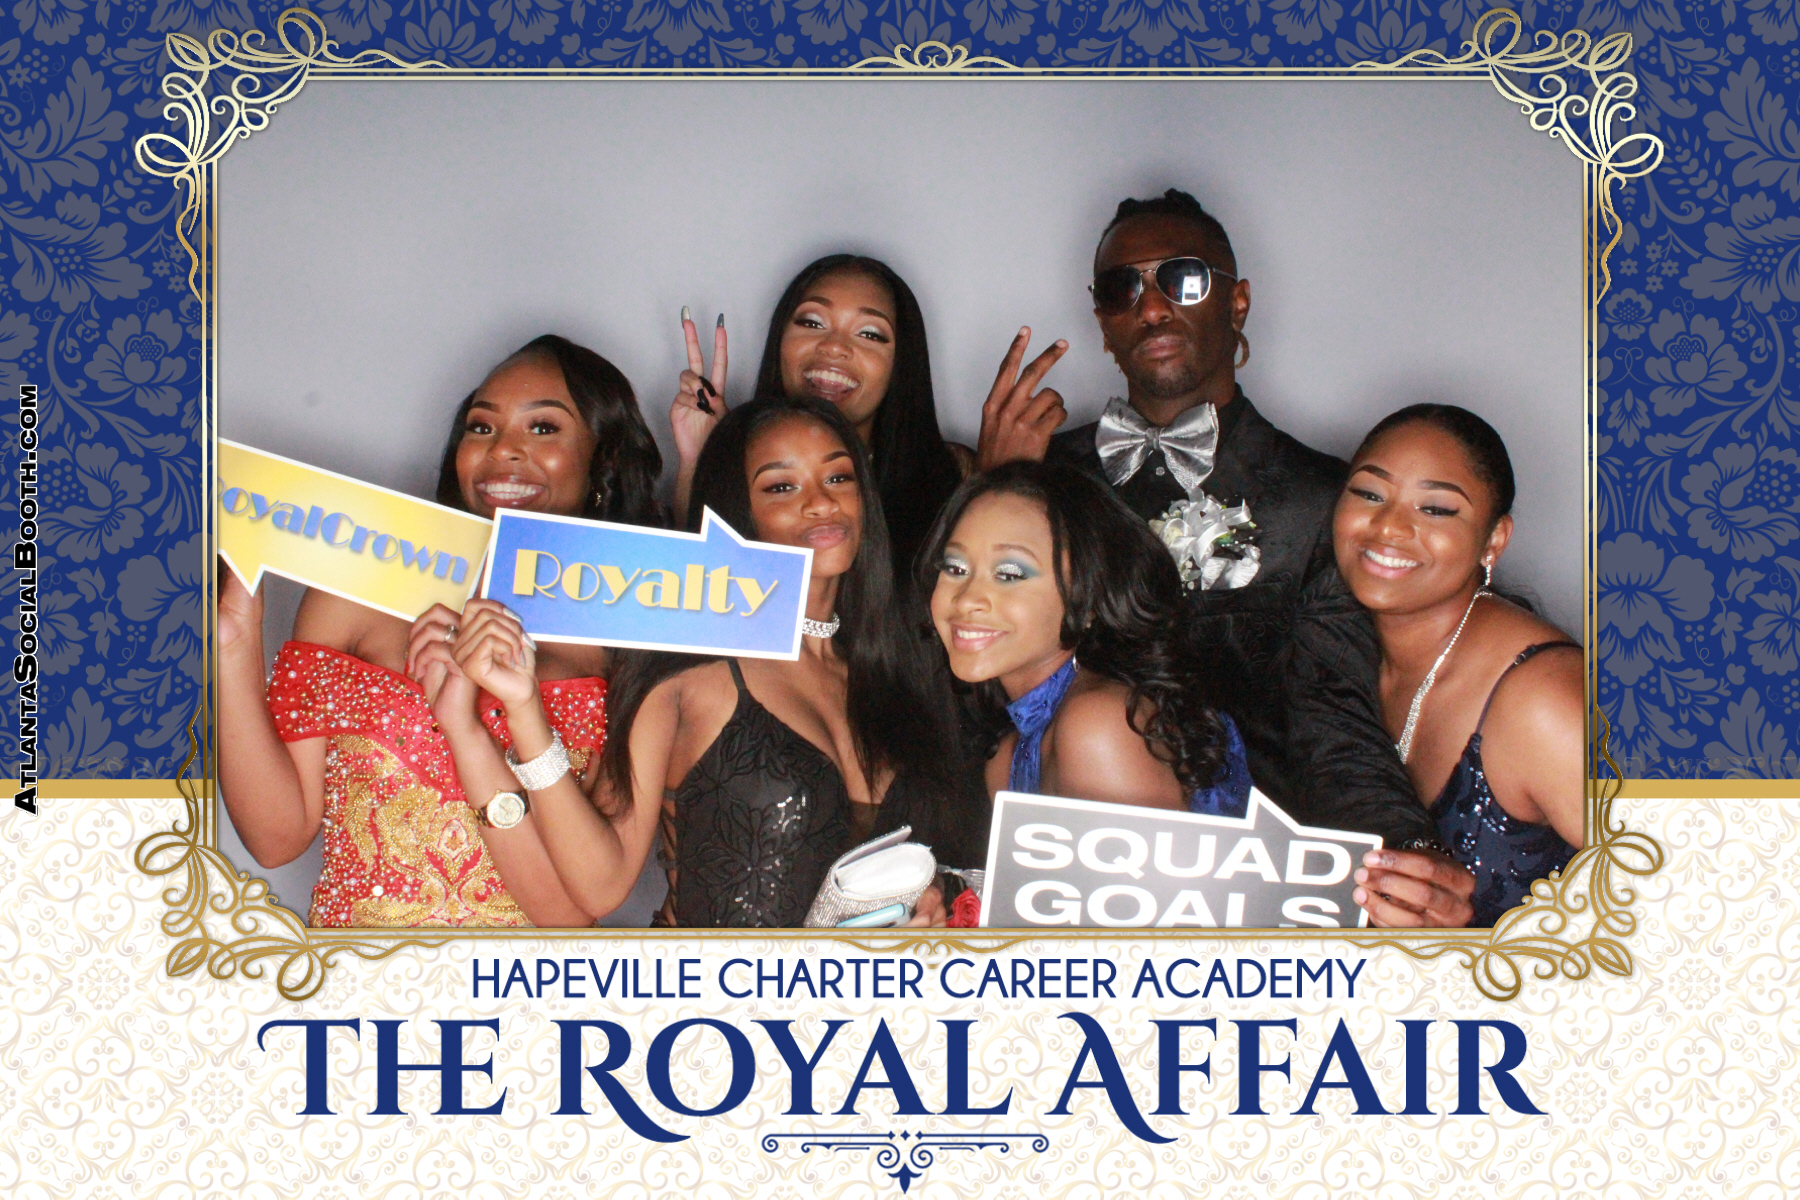 Hapeville Charter Career Academy Pro